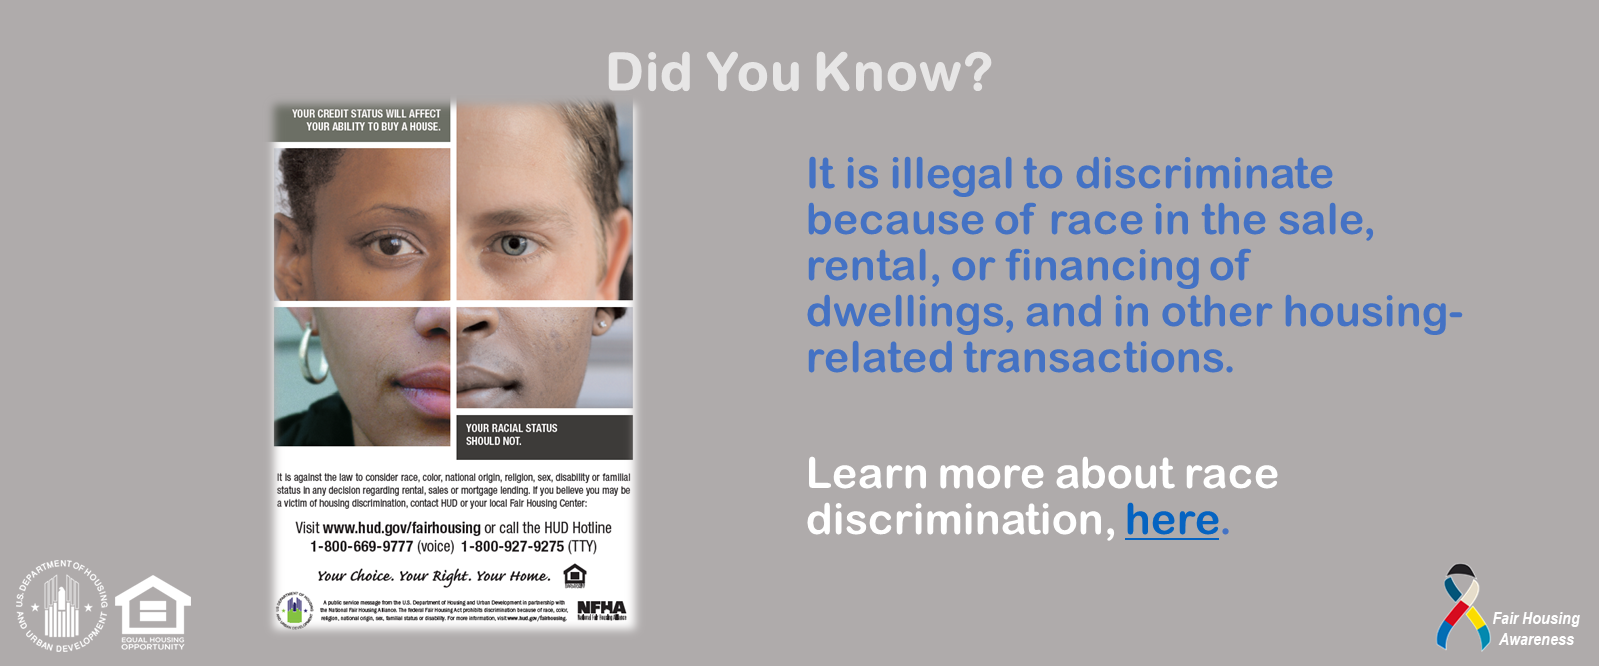 [It is Illegal to Discriminate because of race in the sale, rental, or financing of dwellings, and in other housing-related transactions.]. HUD Photo